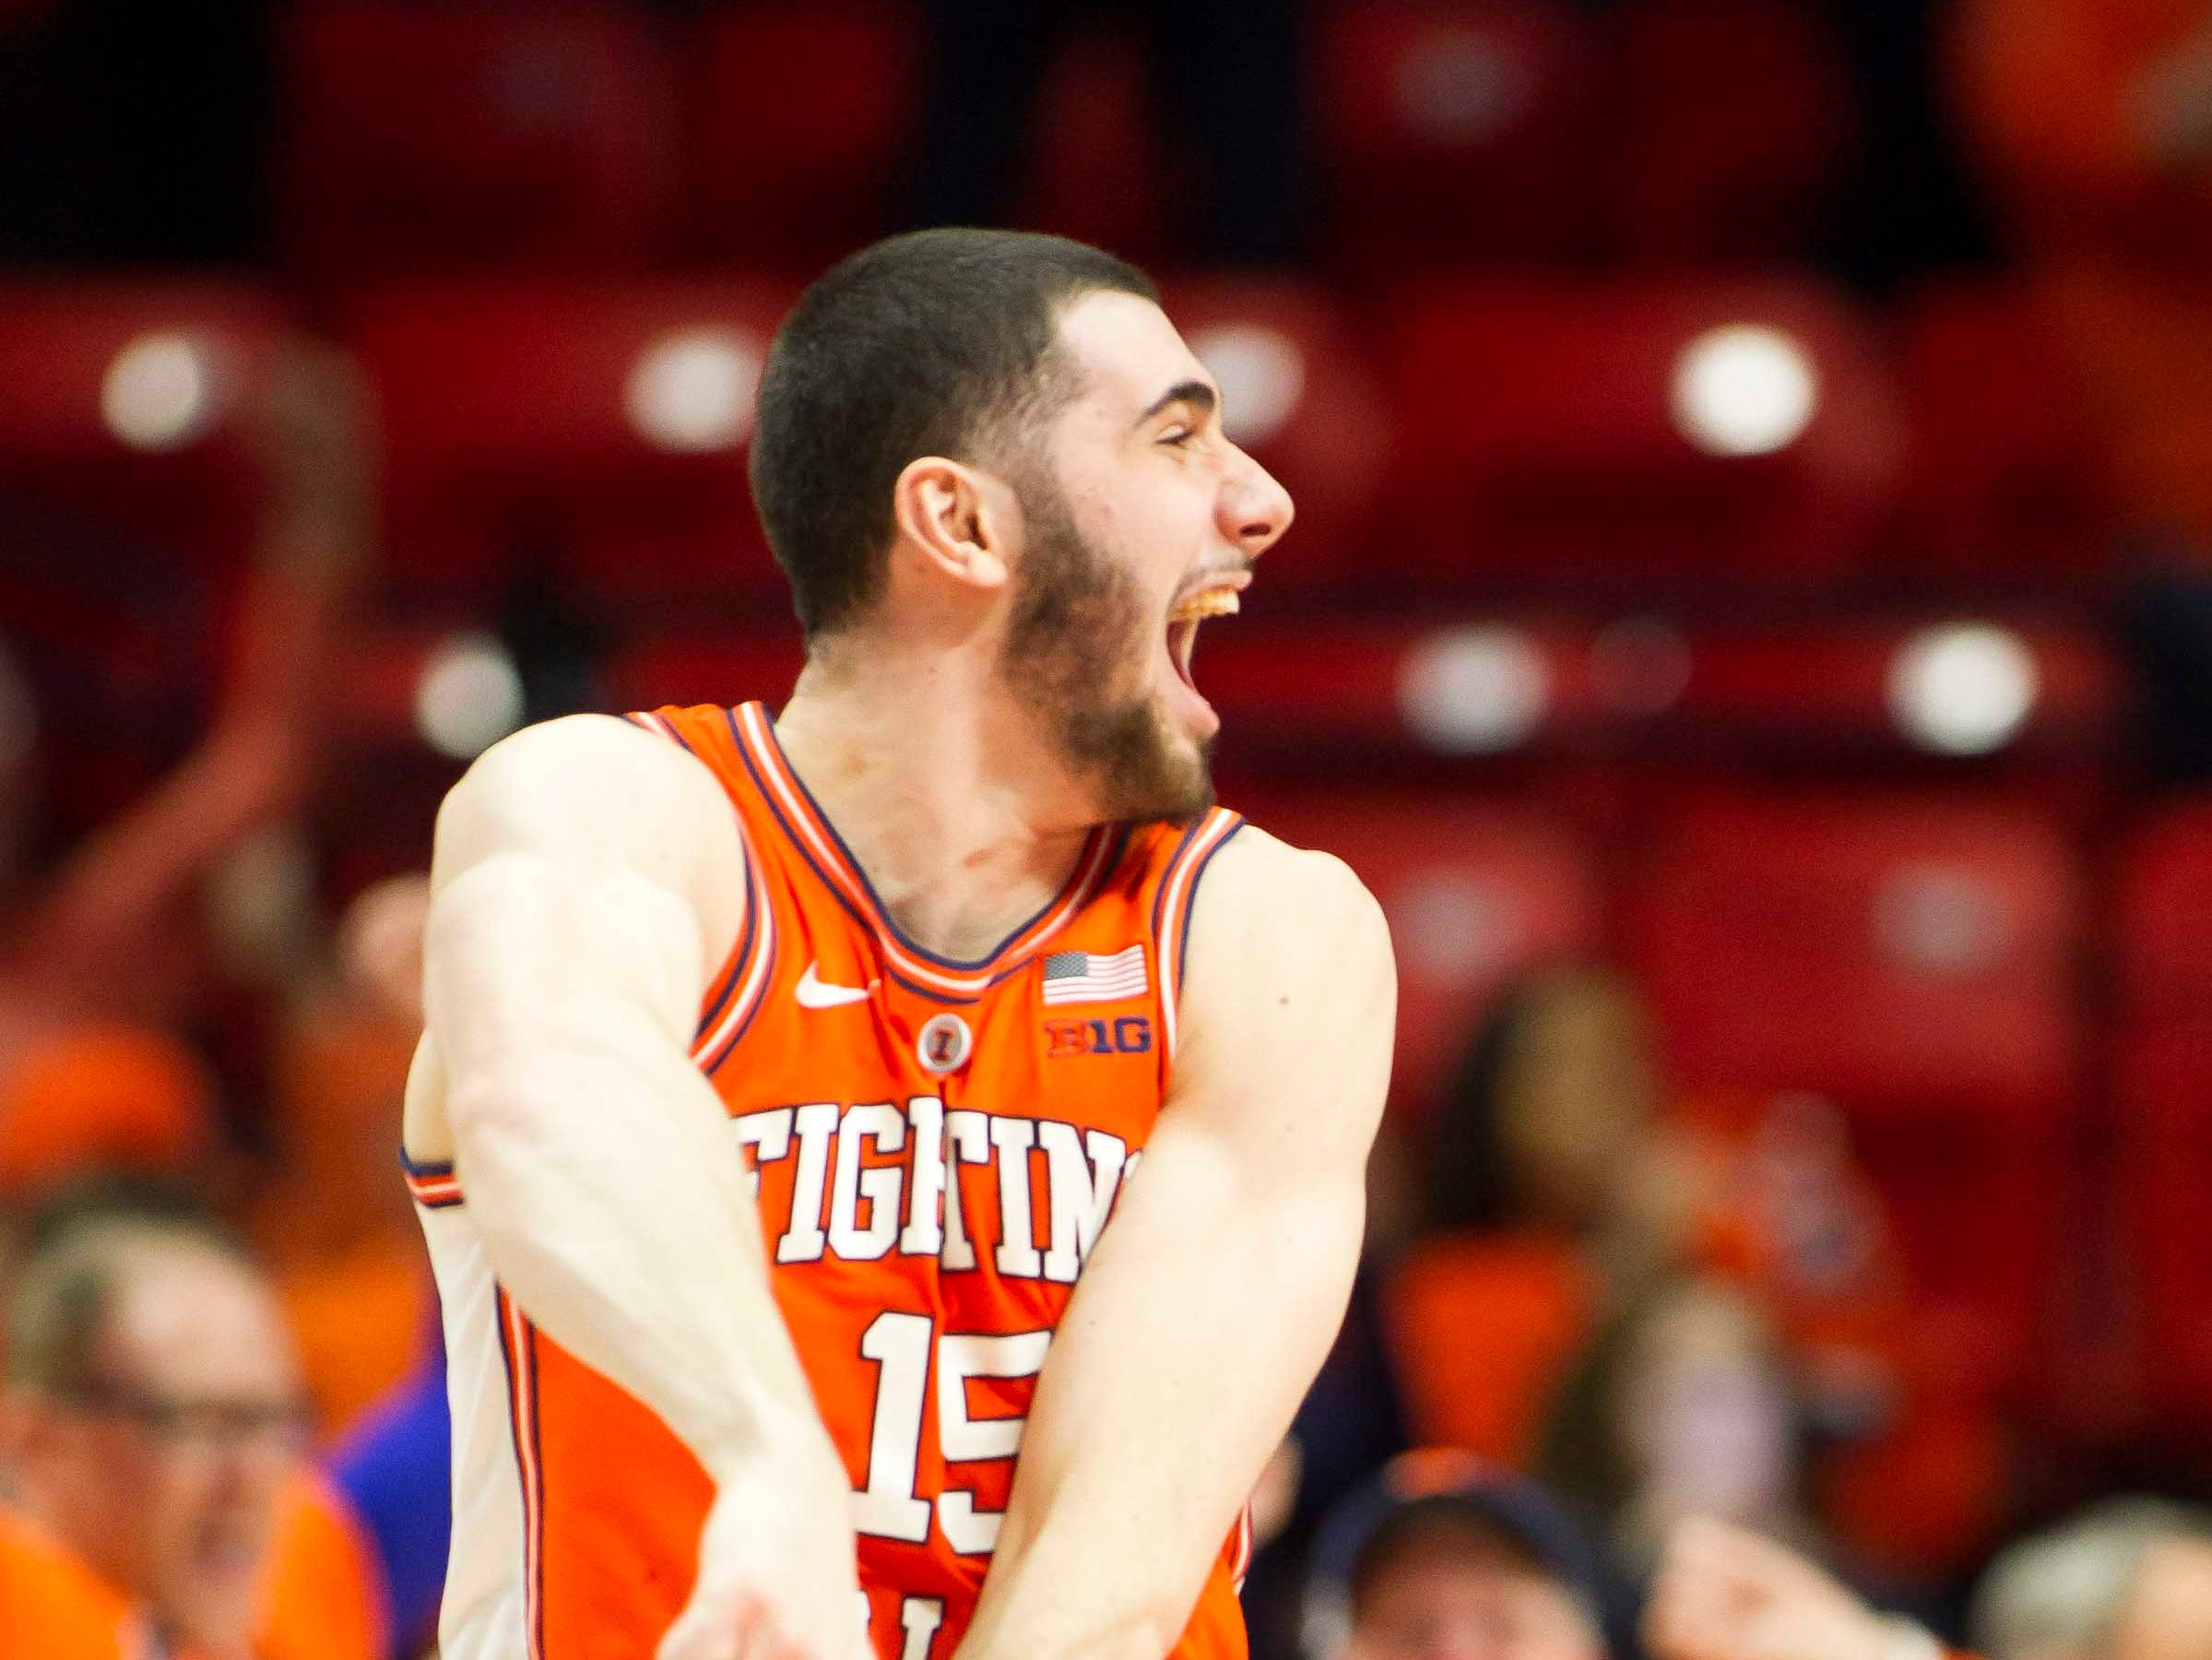 Feb 5, 2019; Champaign, IL, USA; Illinois Fighting Illini forward Giorgi Bezhanishvili (15) reacts to the final buzzer at the end of the game against the Michigan State Spartans at State Farm Center. Mandatory Credit: Mike Granse-USA TODAY Sports